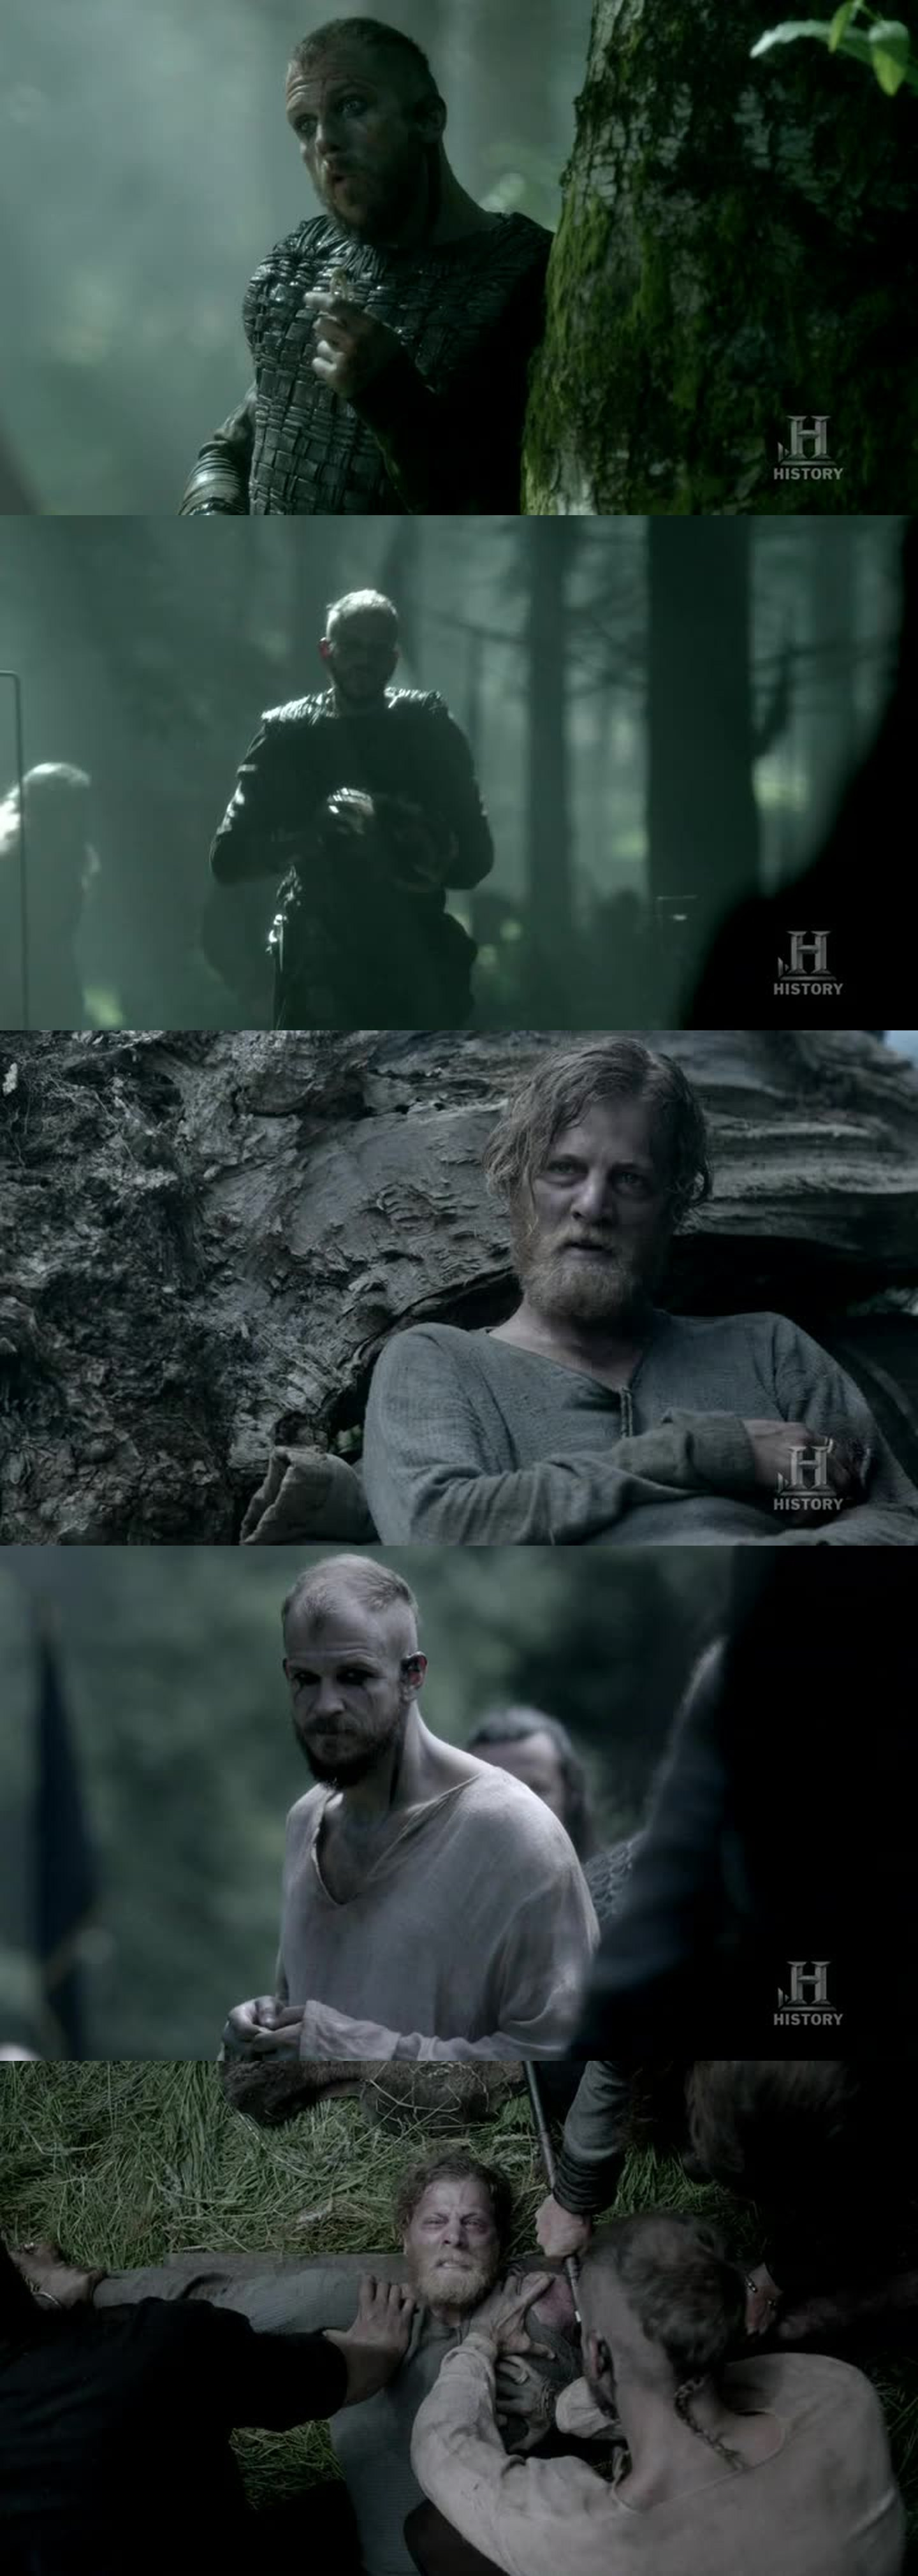 Floki:  Yes, I will bring it to you.  His corpse is not yet in the earth.  Torstein:  Floki, will you do it? Floki:  I suppose so.  Anything and everything you want done, just ask Floki.